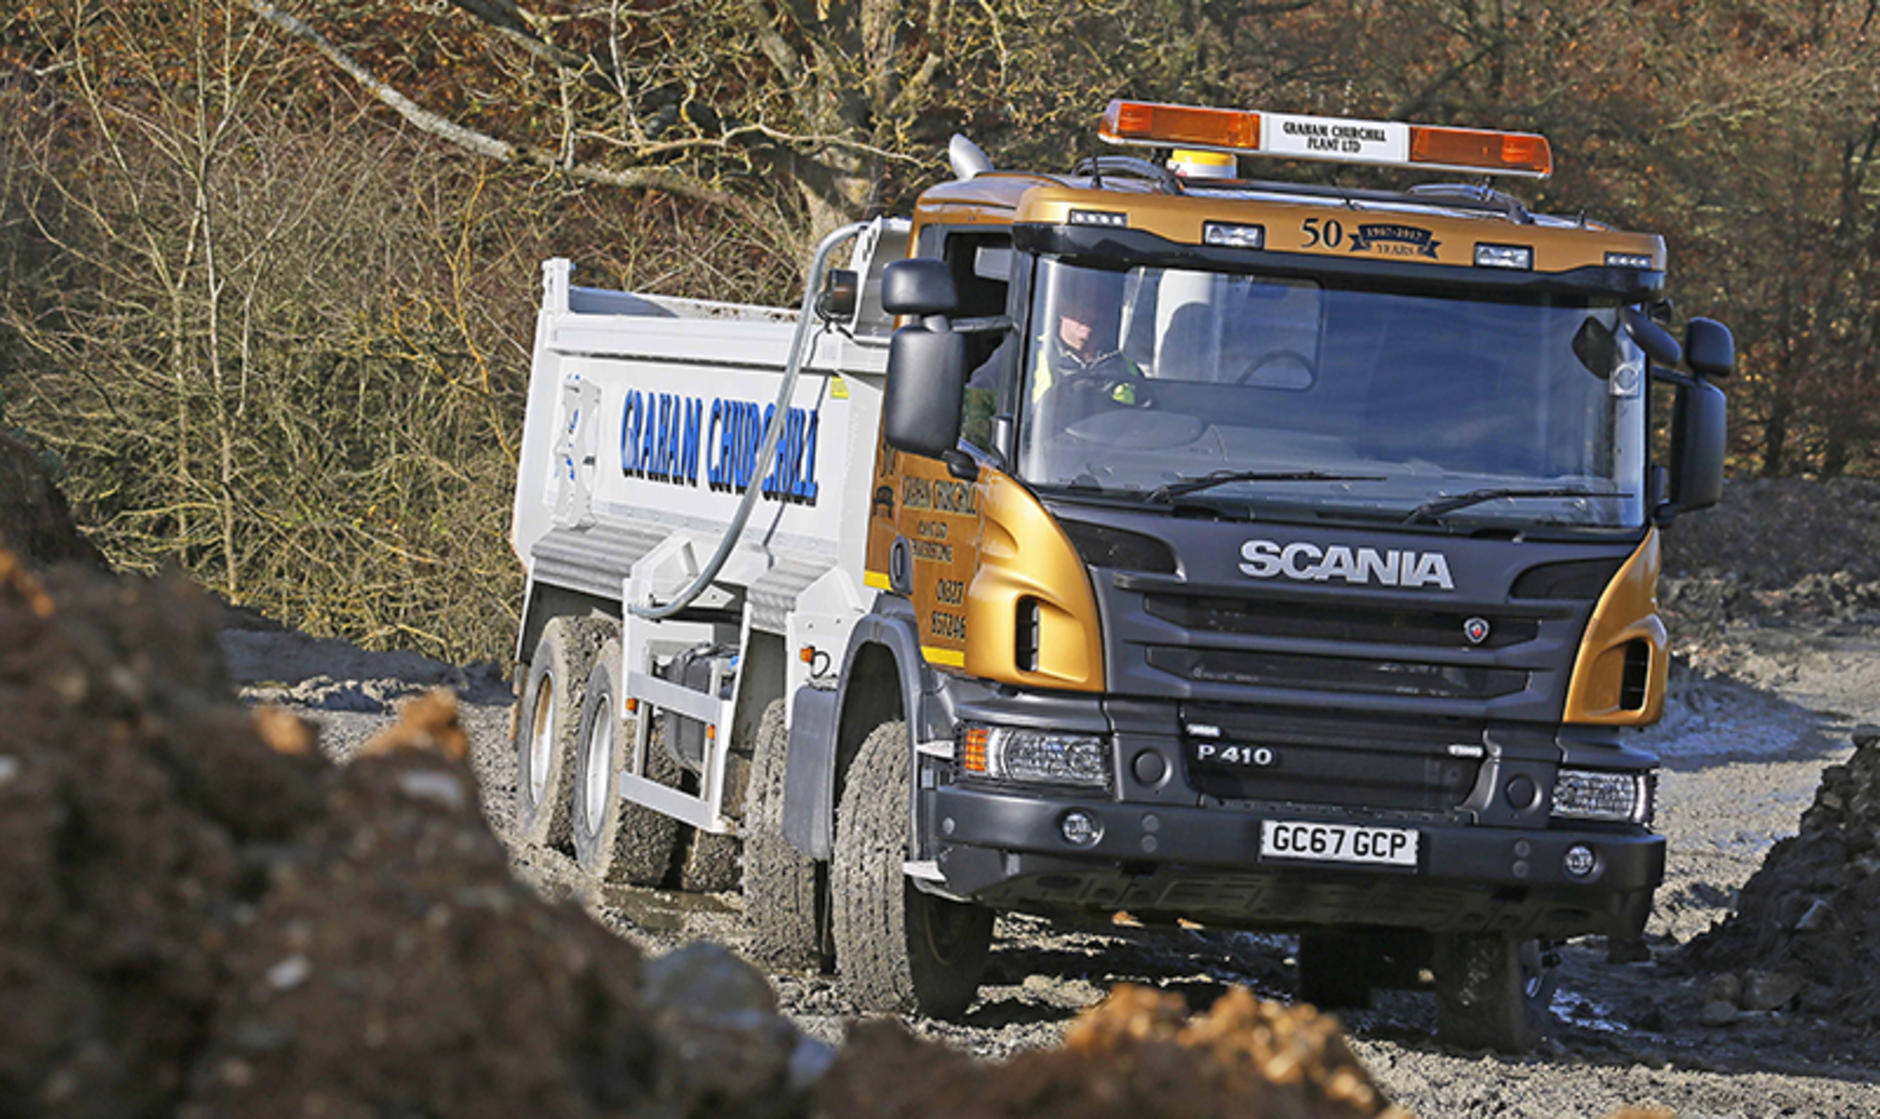 Graham Churchill's 50th anniversary Scania tipper